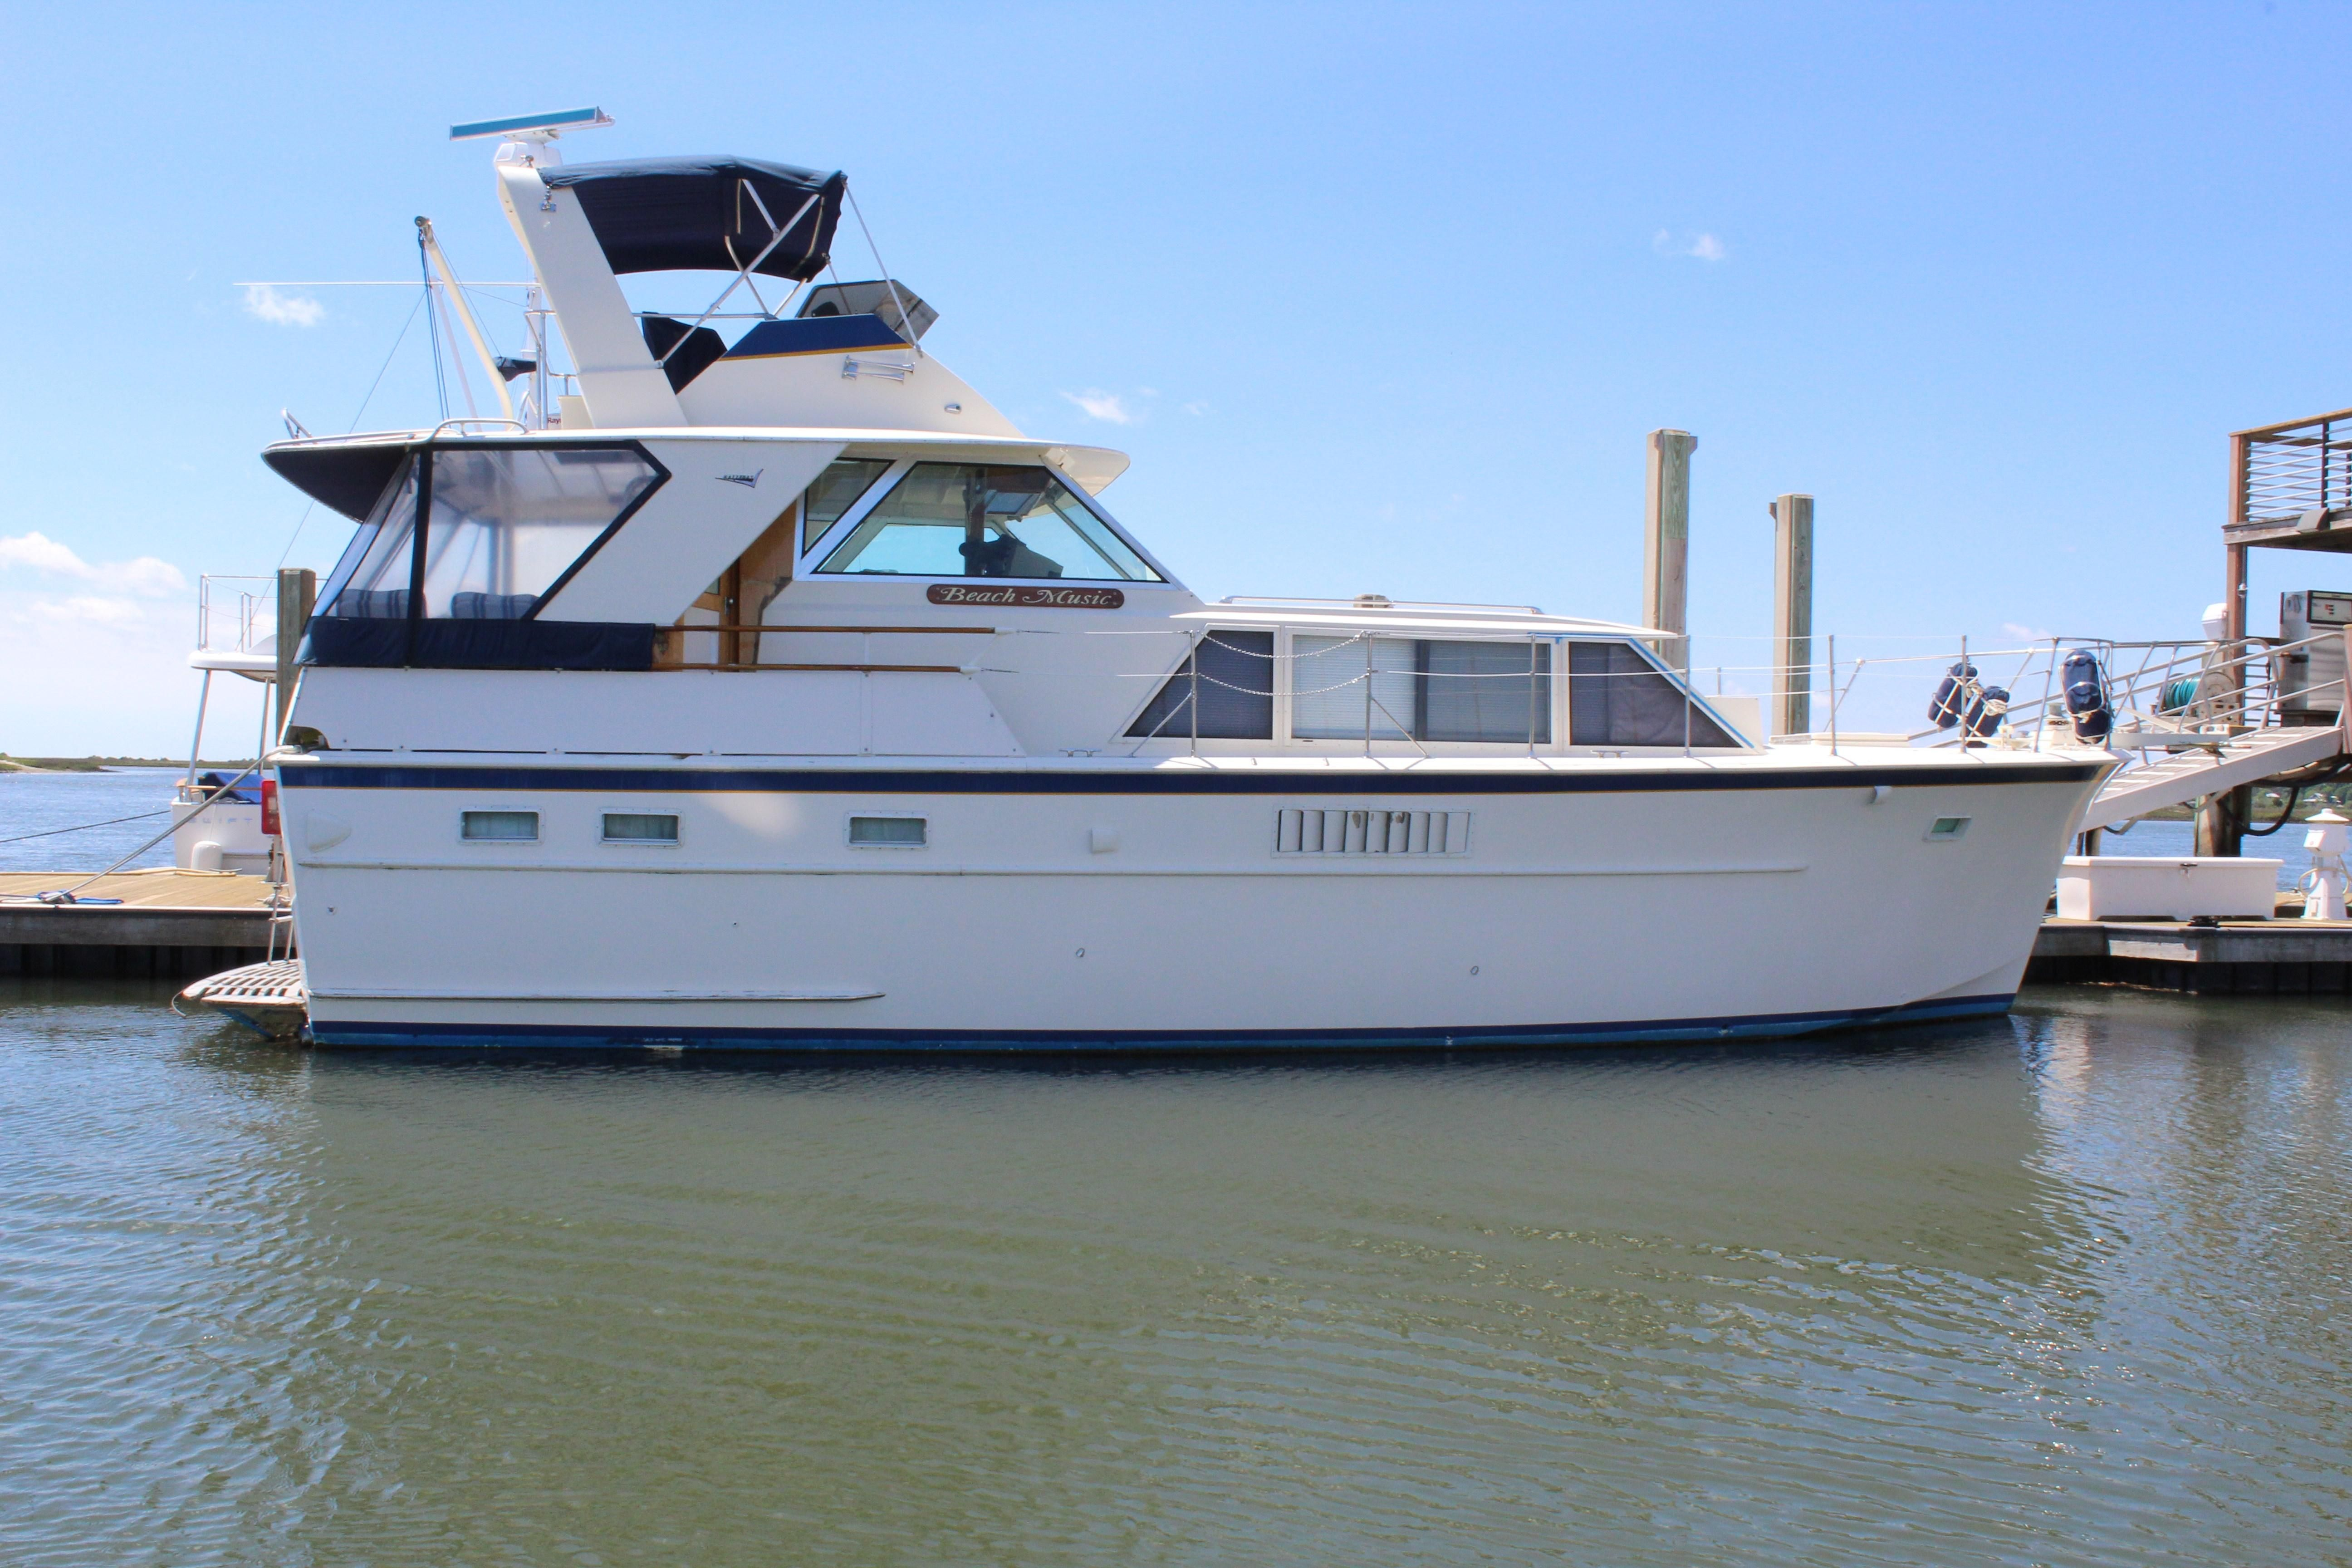 1970 hatteras 44 tri cabin motor yacht power boat for sale for Hatteras motor yacht for sale